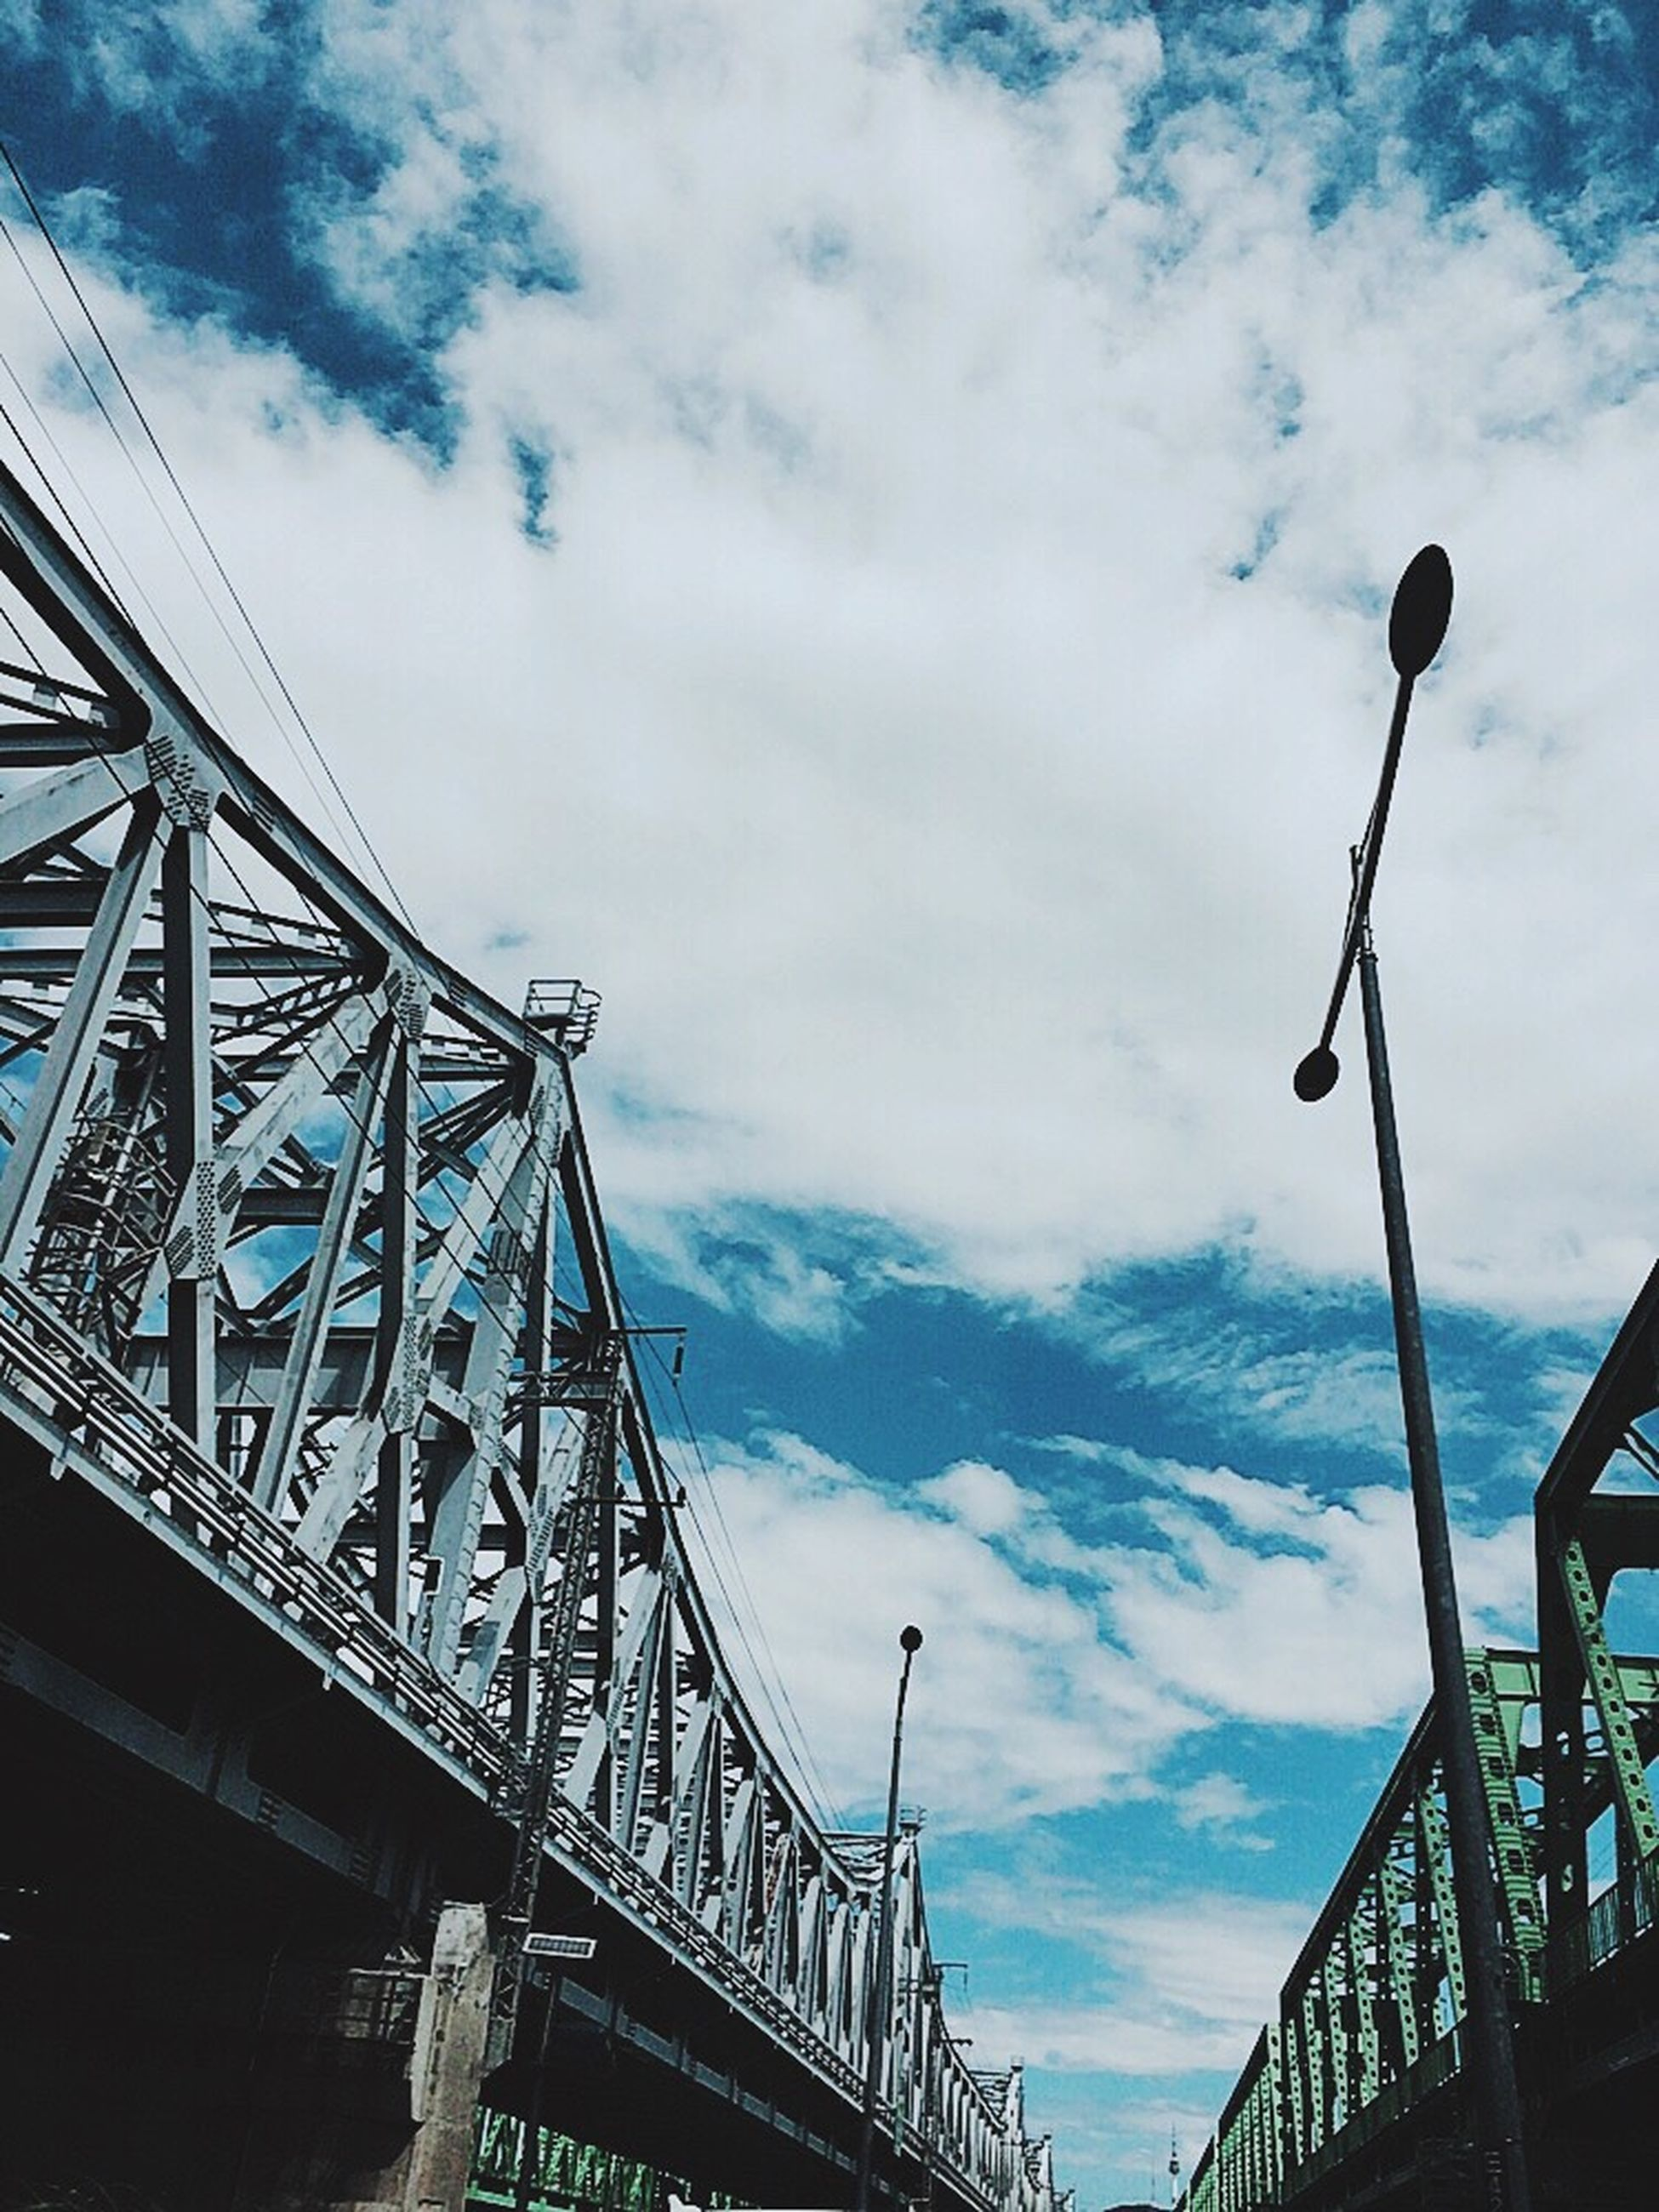 sky, cloud - sky, architecture, low angle view, travel destinations, building exterior, outdoors, no people, built structure, day, connection, city, bridge - man made structure